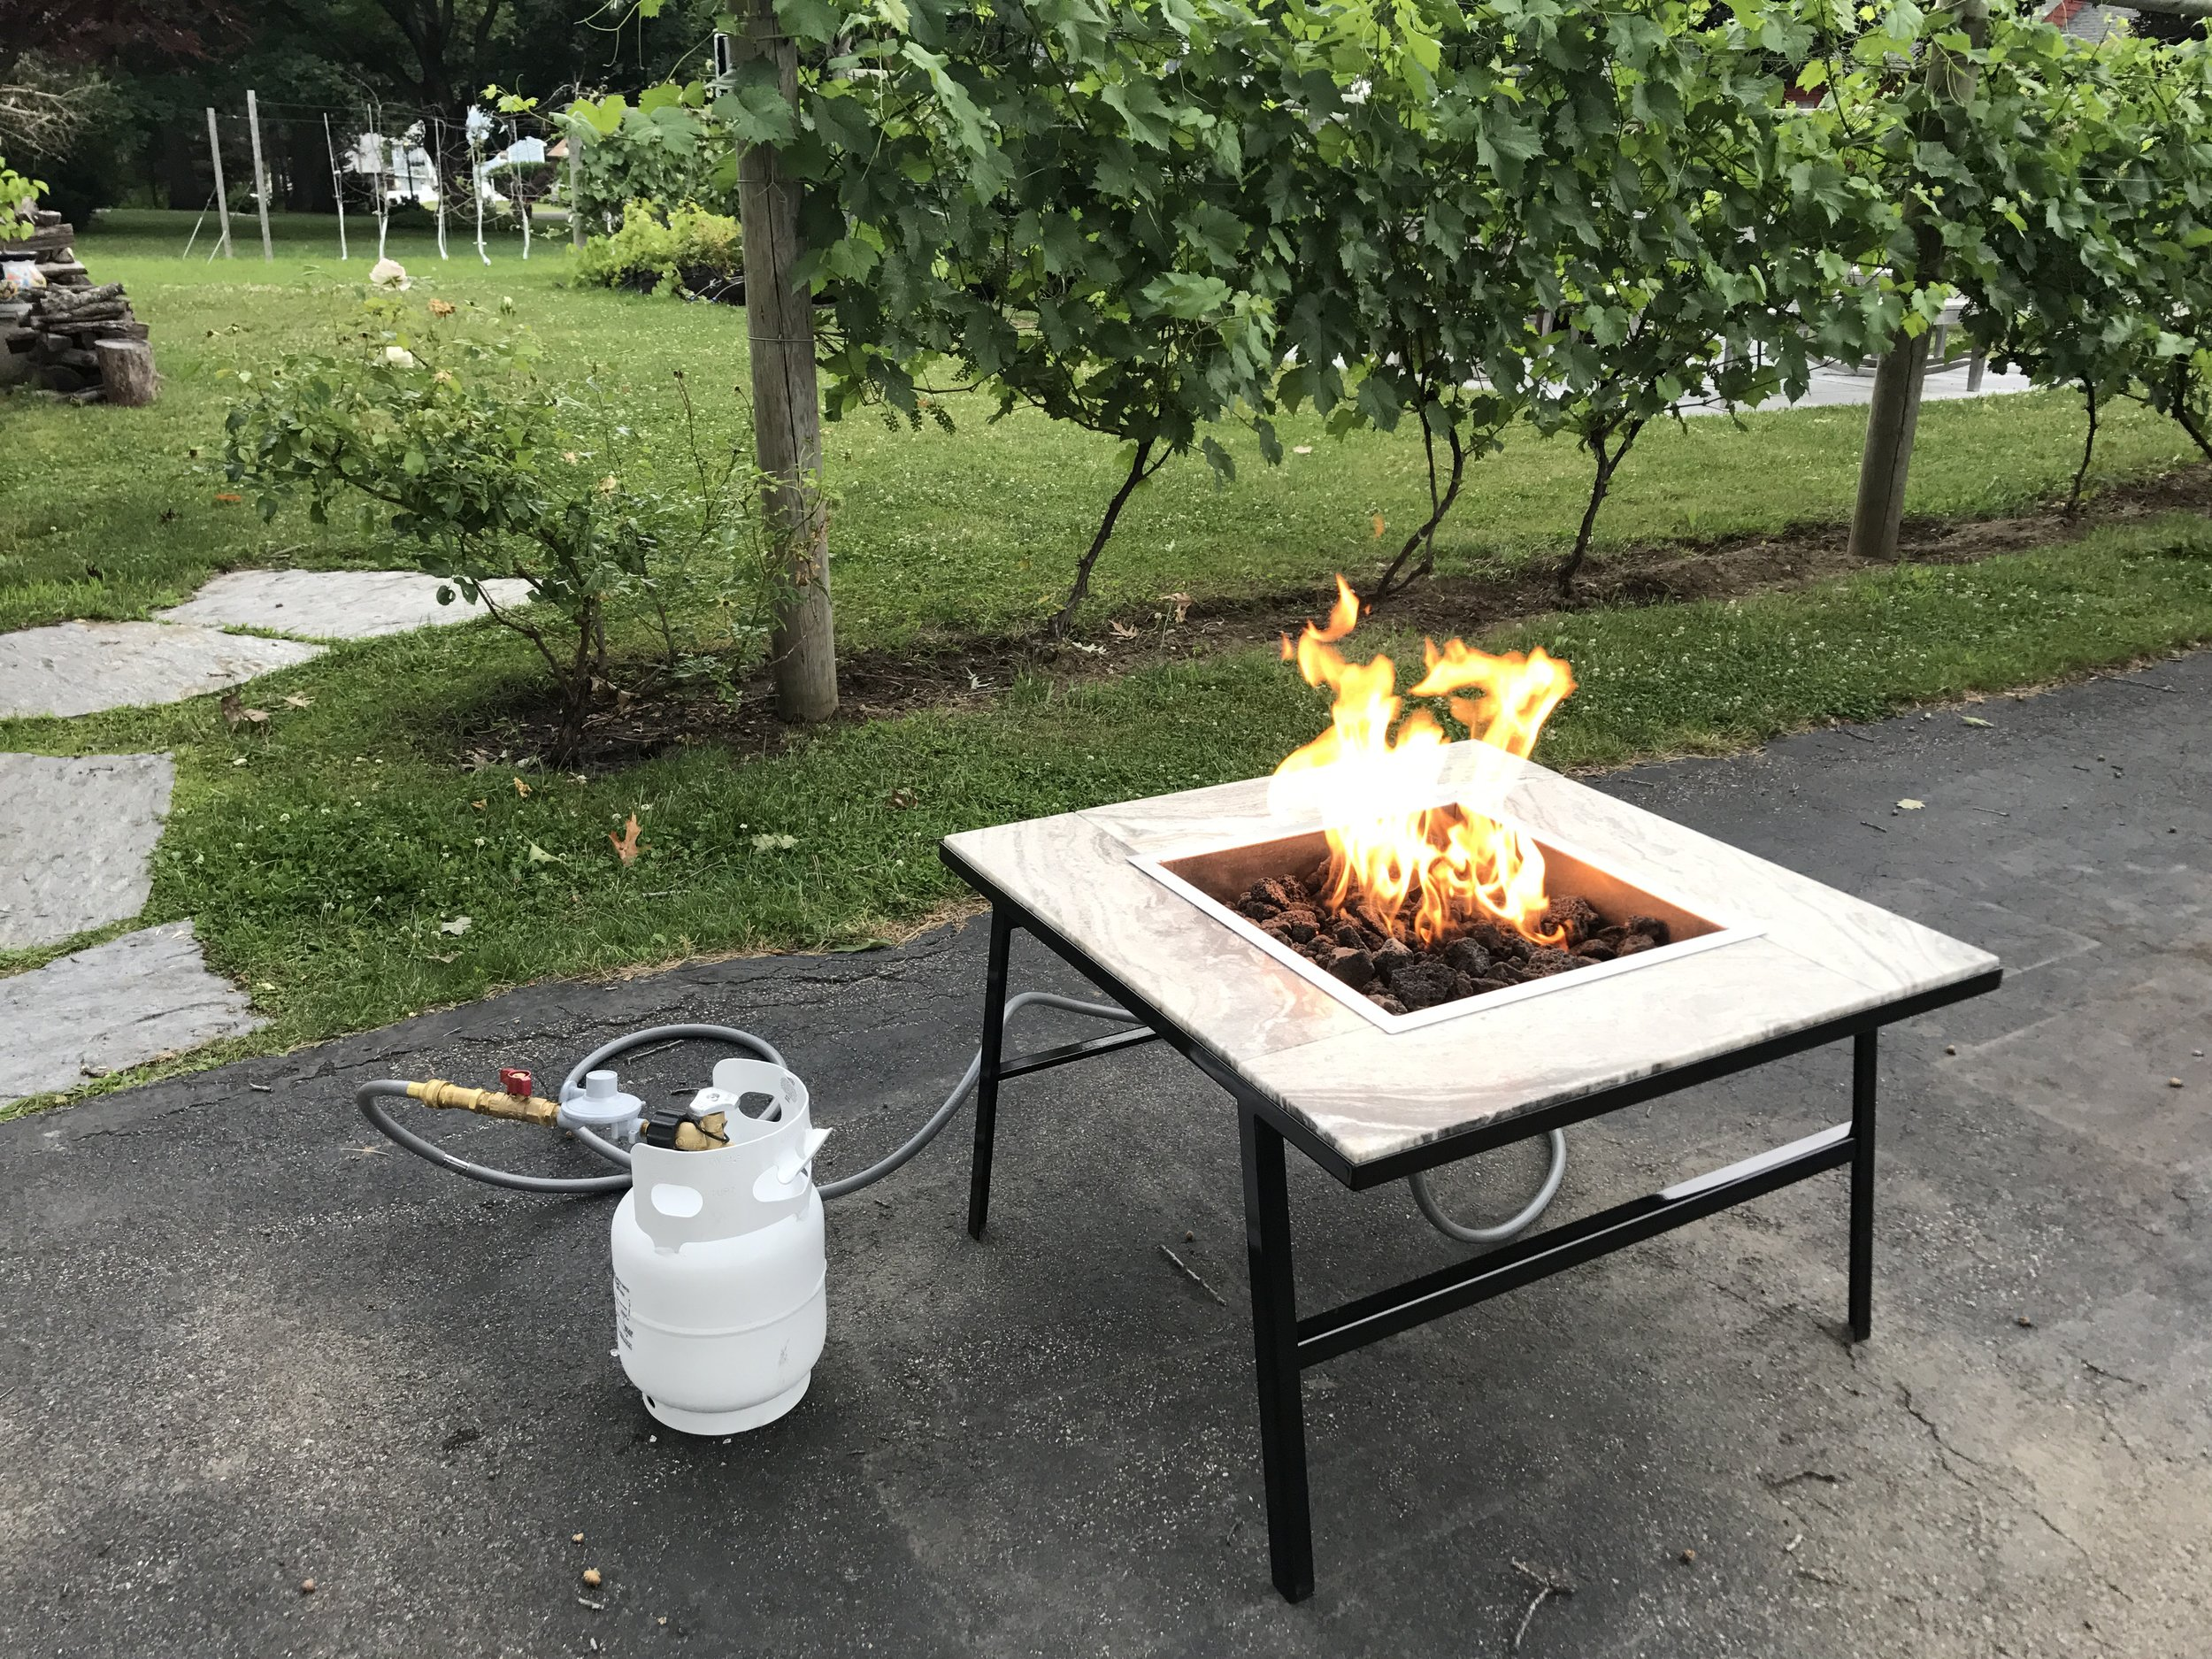 Select above or here to see a Gallery of KSV 4IN1 Fire Pit pictures.